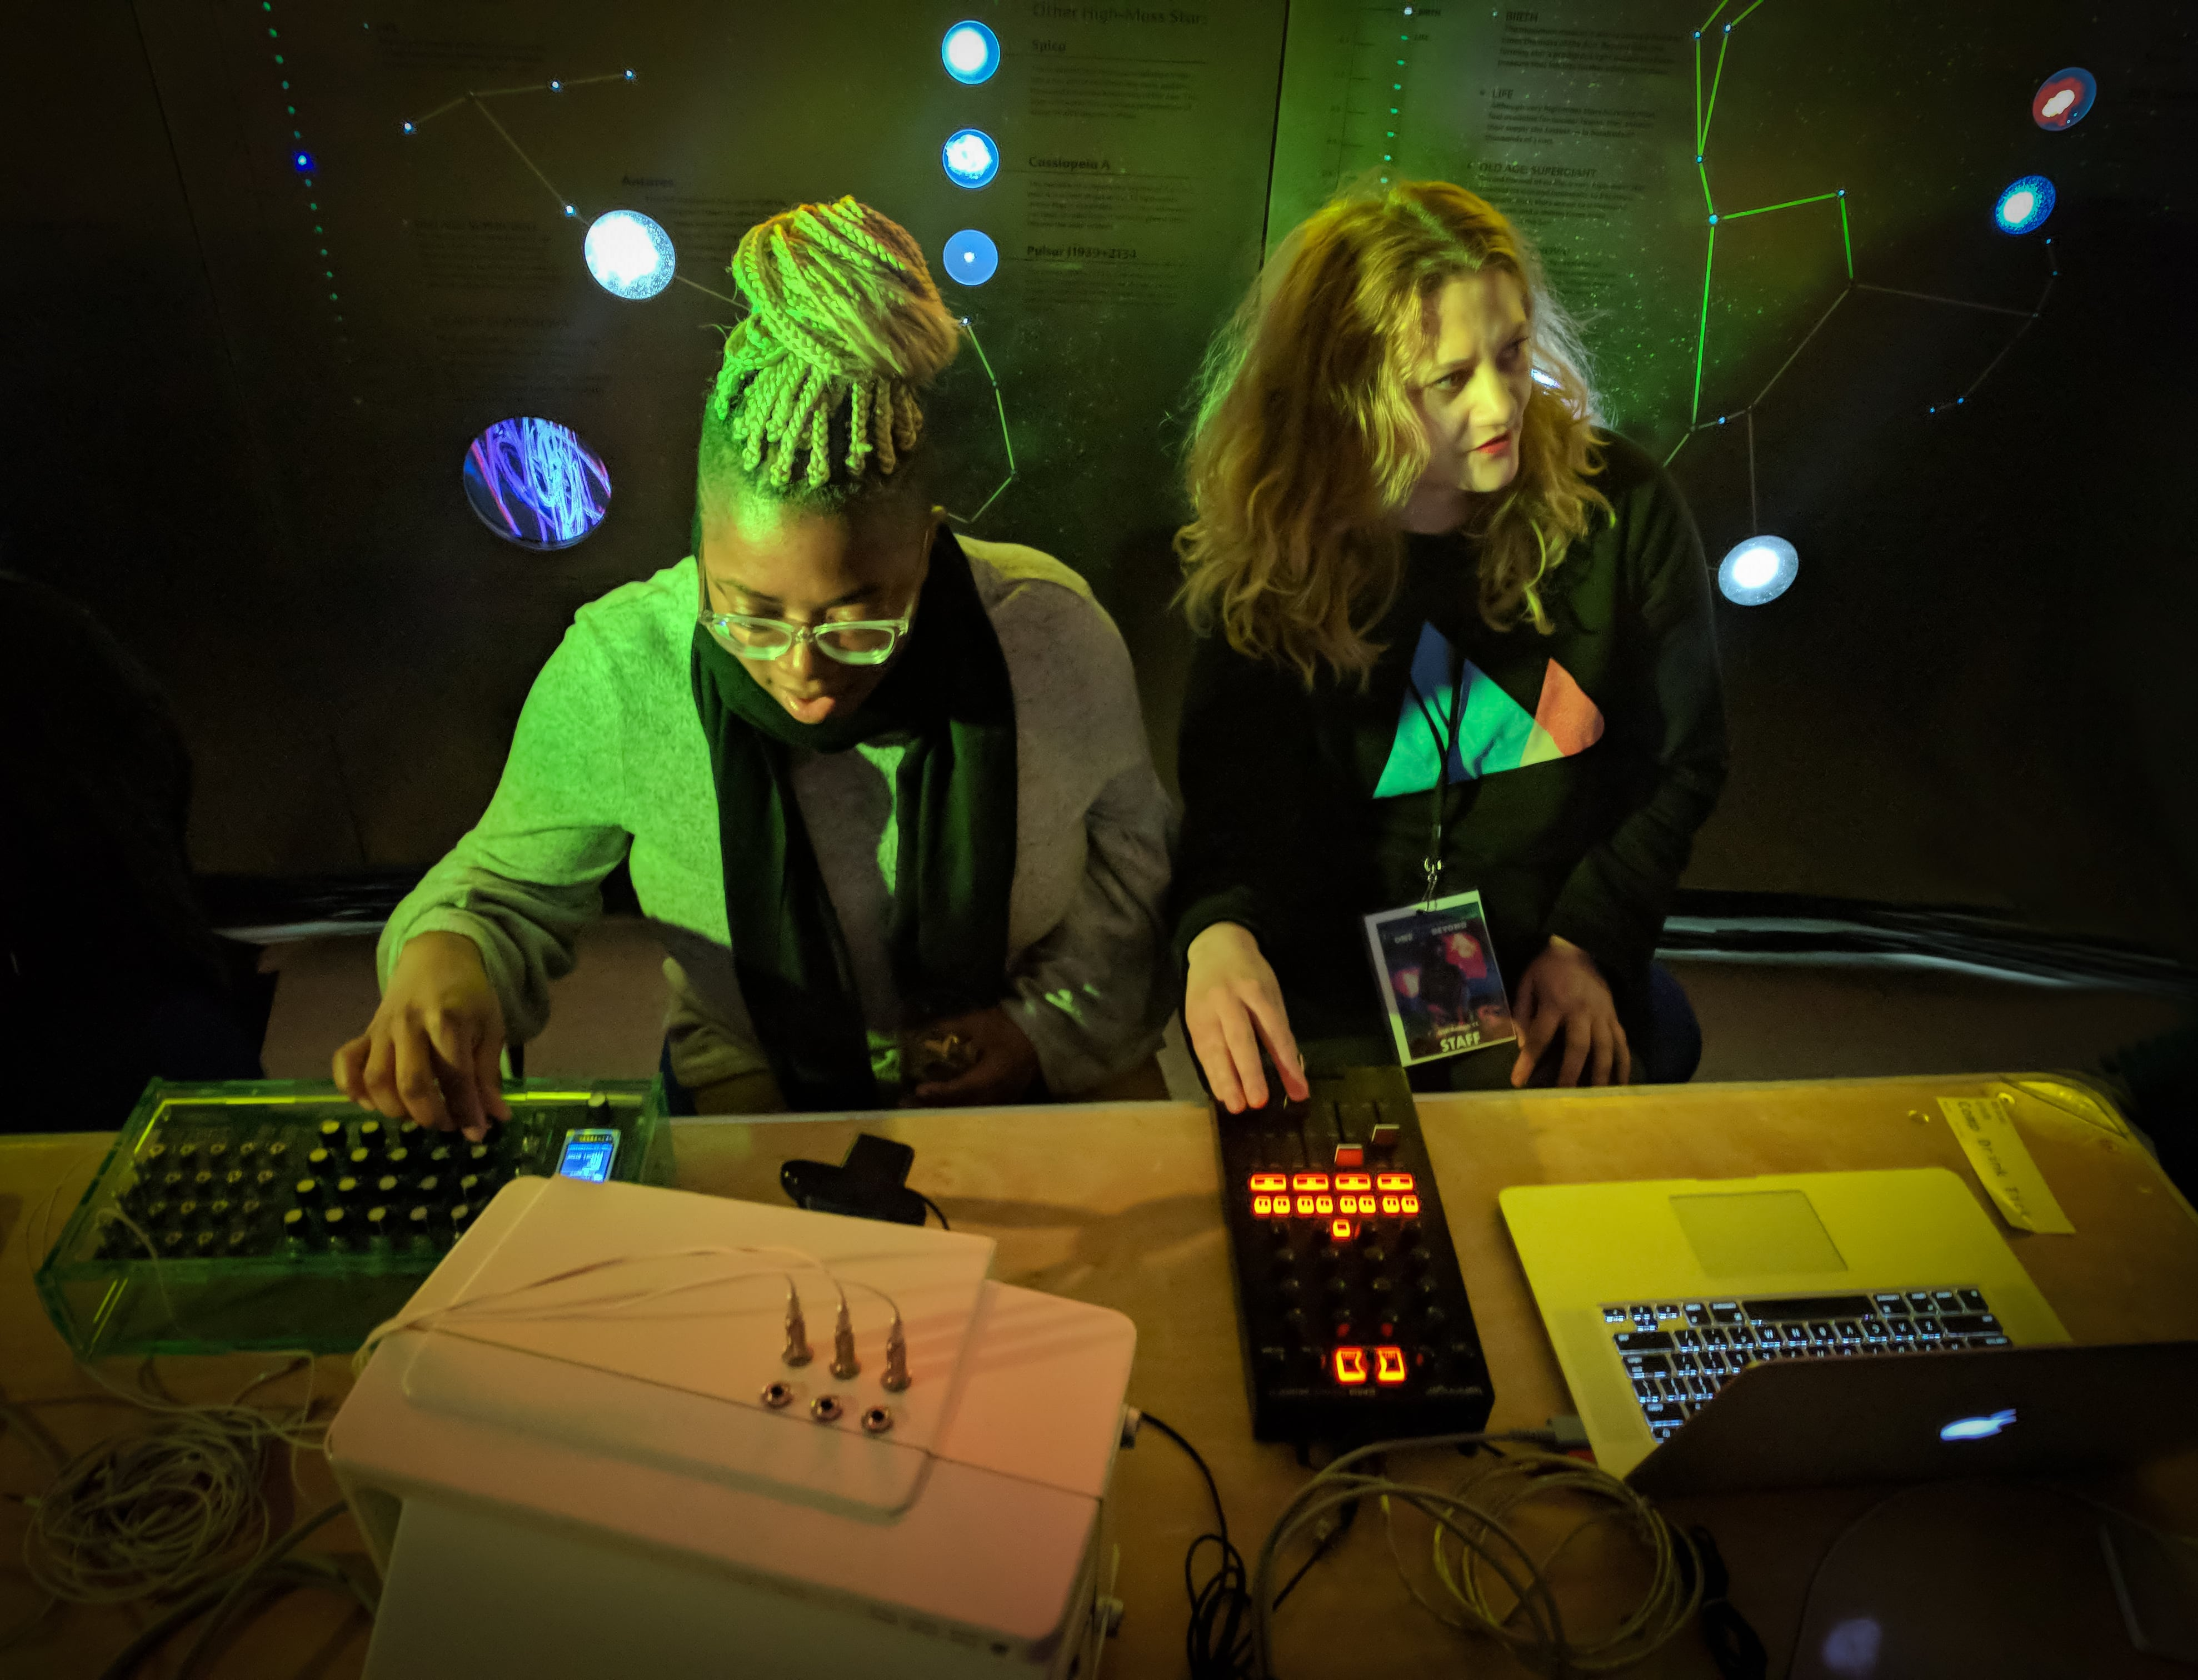 Tasha Dougé and Jennie West mix visuals with resident media artist Benton C Bainbridge for One Step Beyond in American Museum of Natural History's Hall of the Universe.